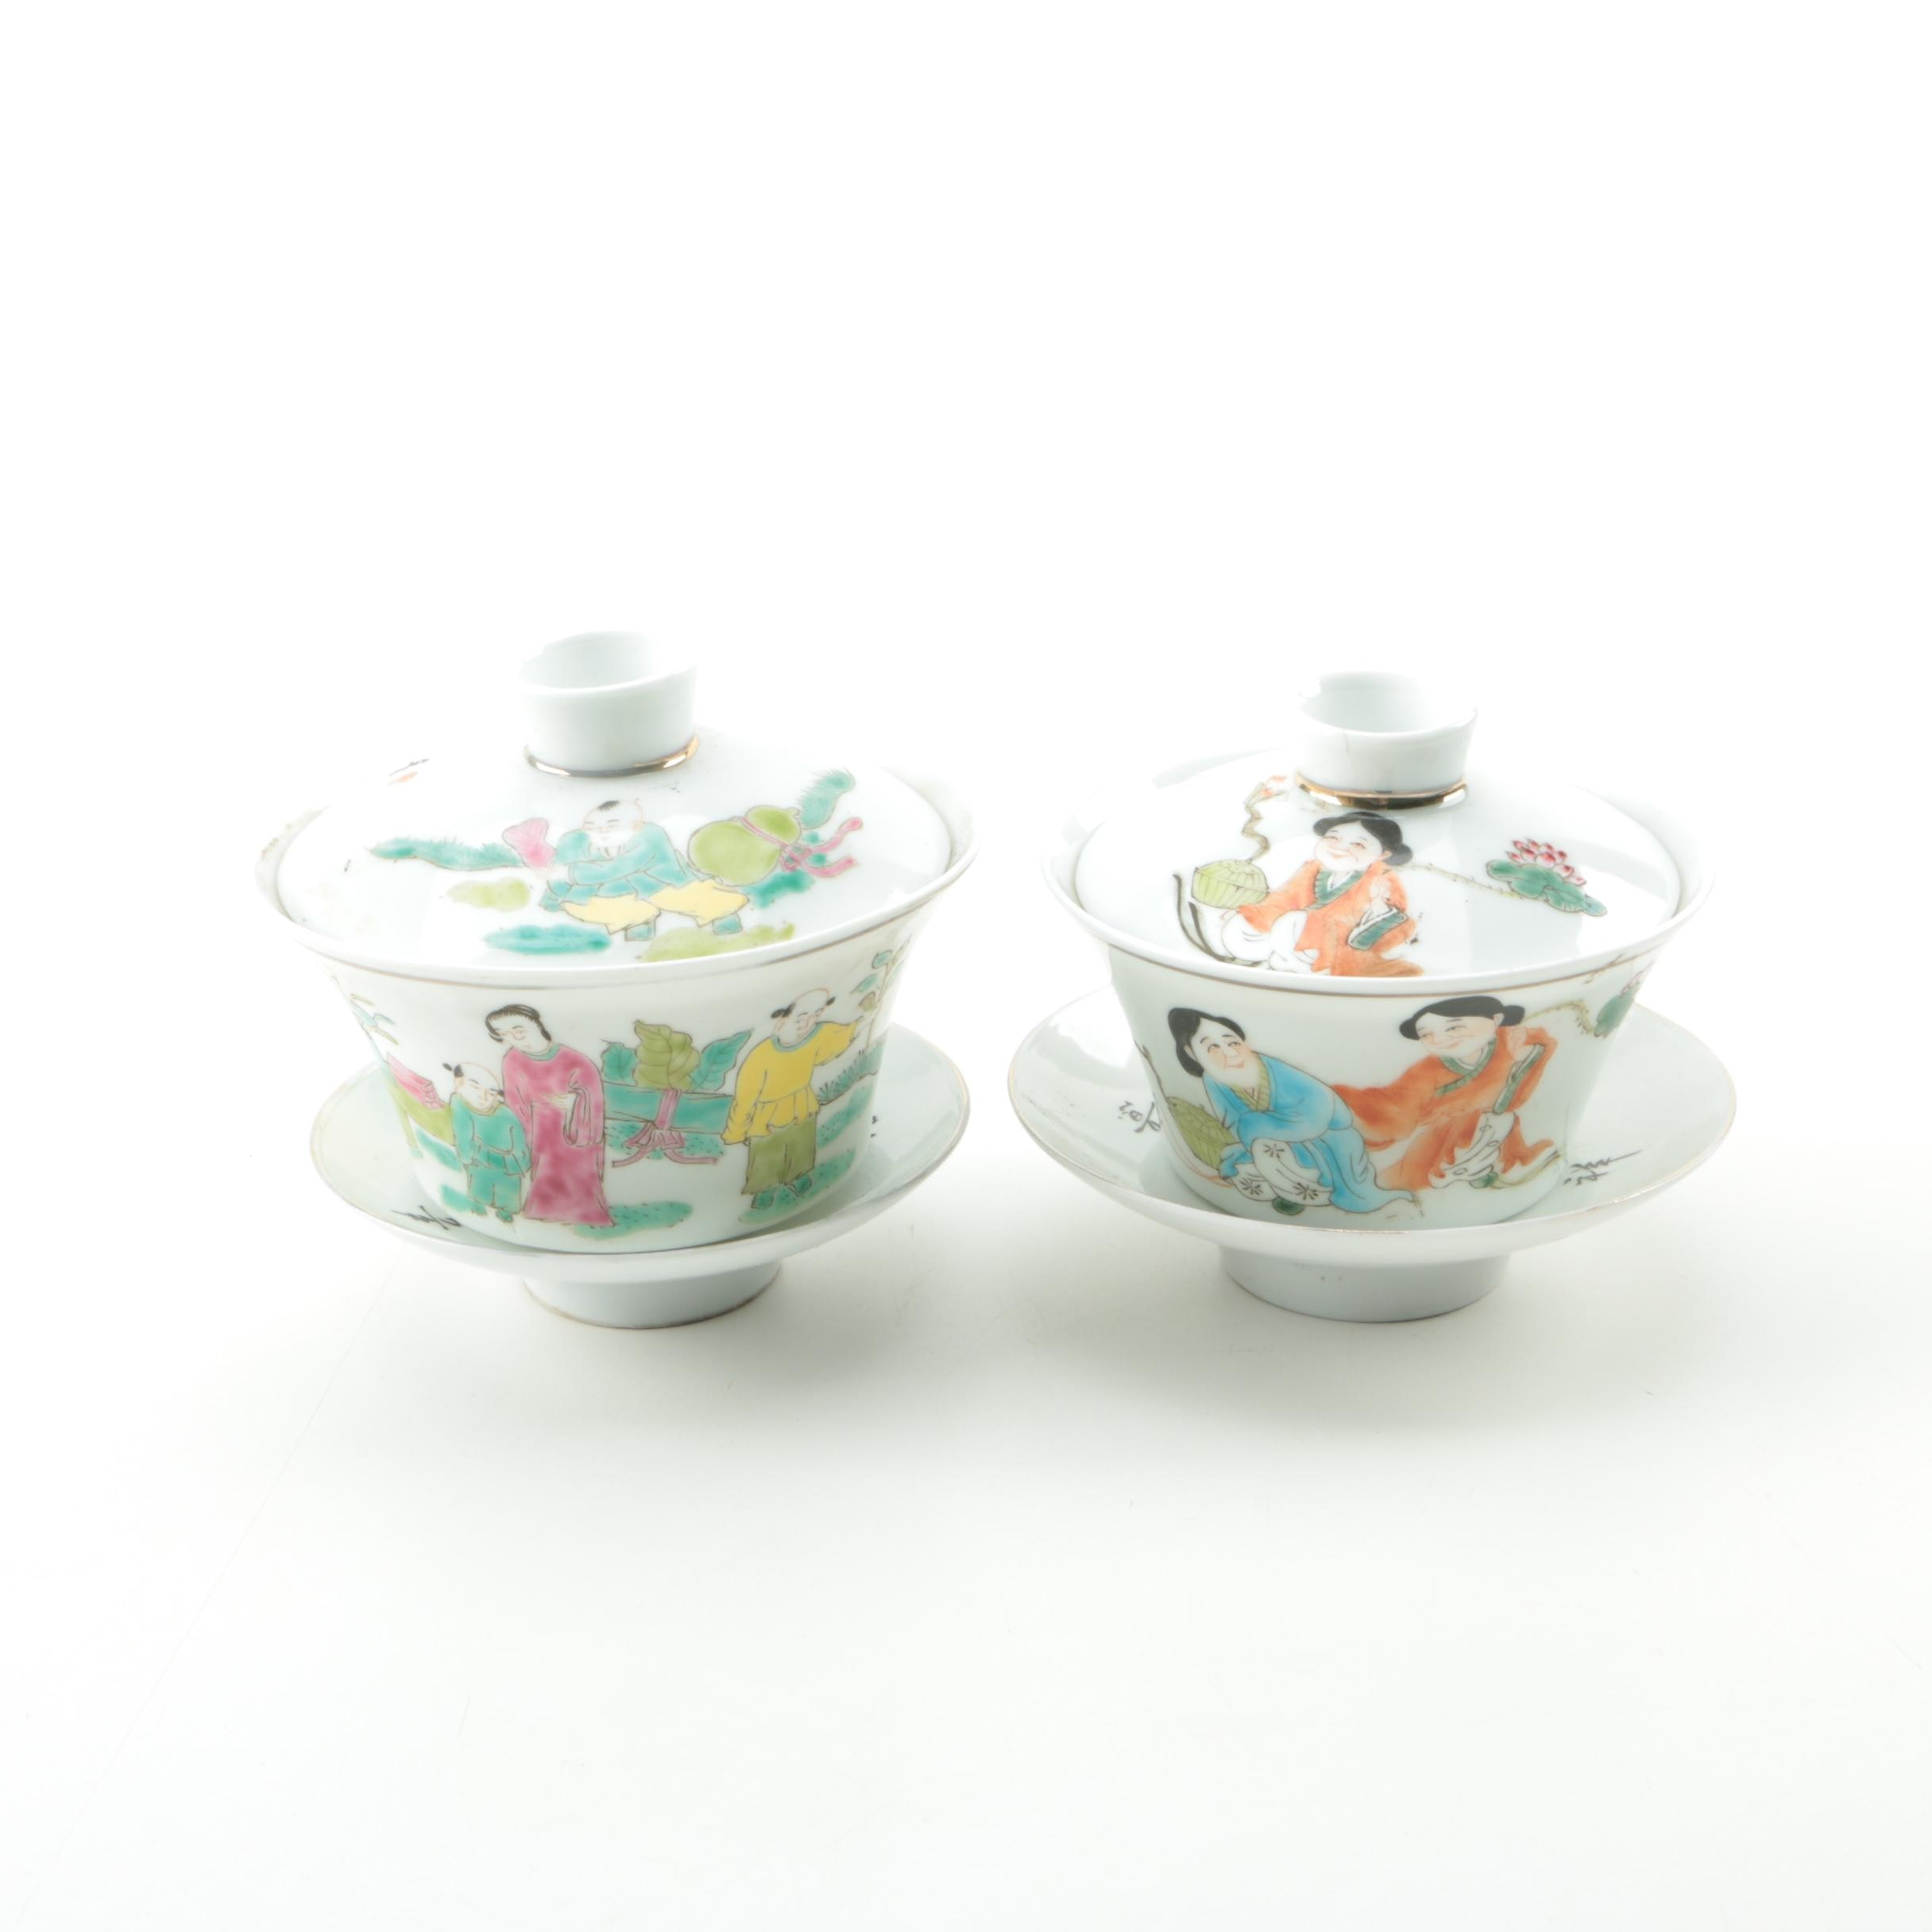 Chinese Ceramic Lidded Soup Bowls with Saucers